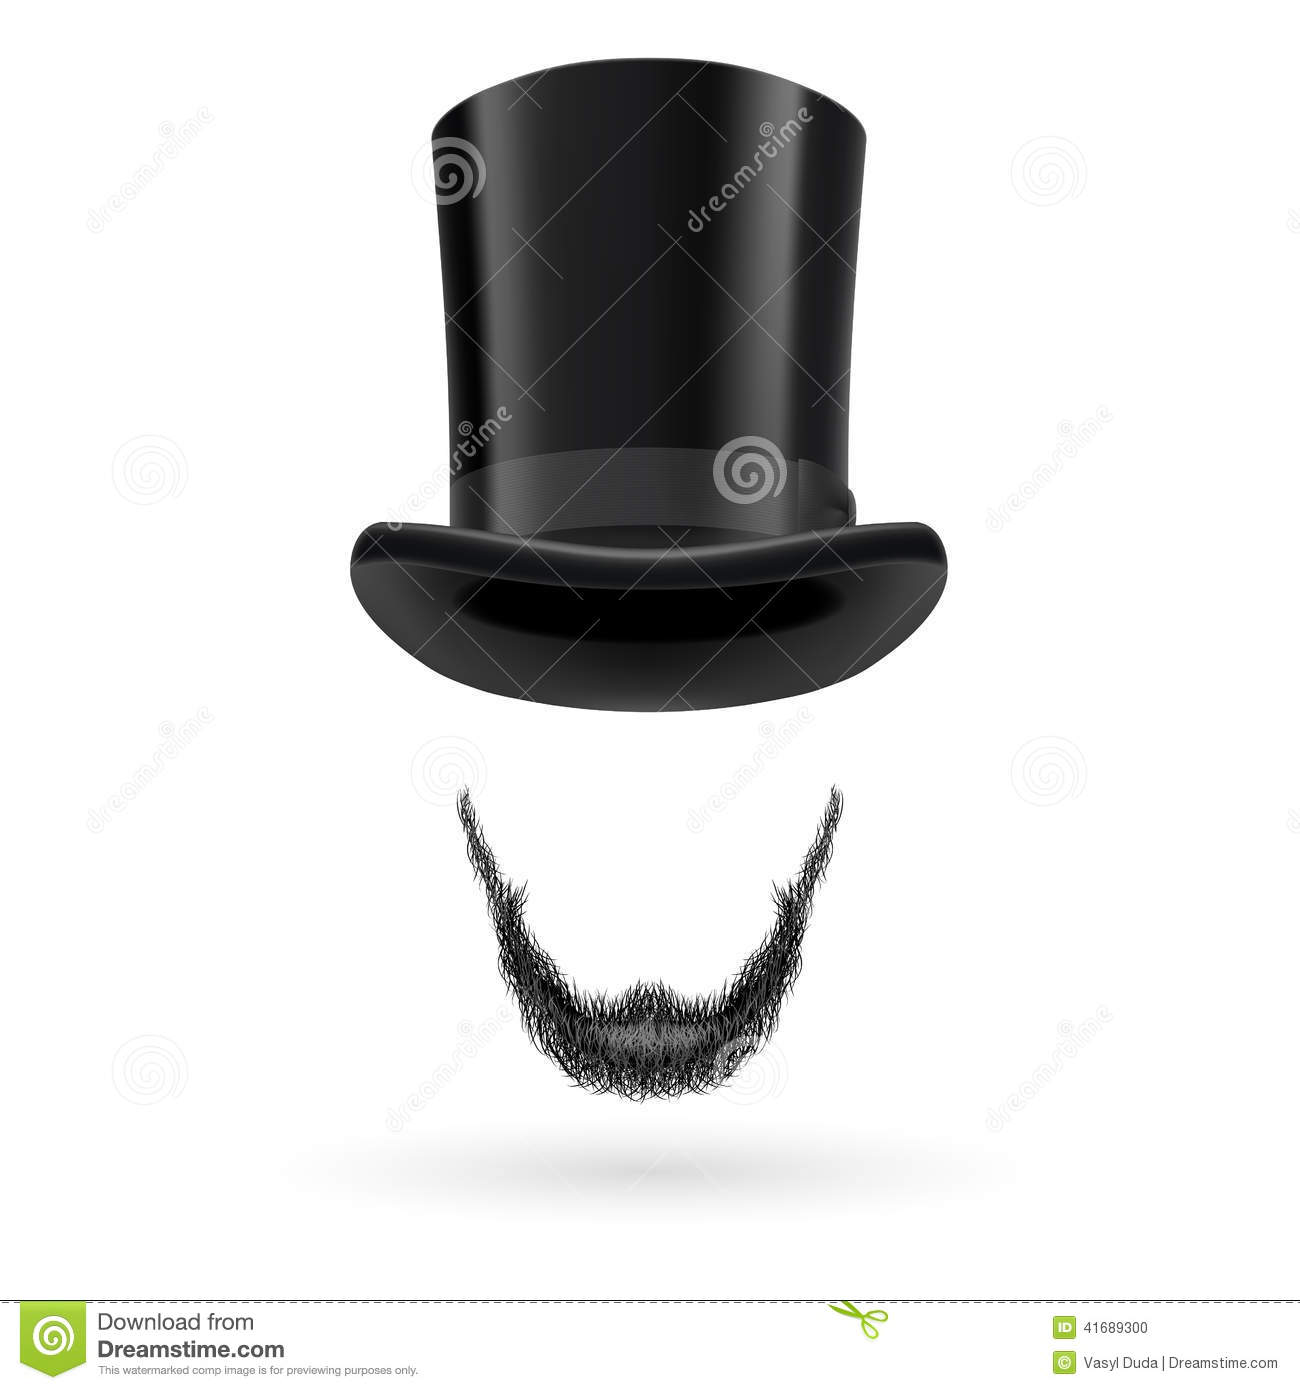 abraham lincoln hat clipart - photo #11